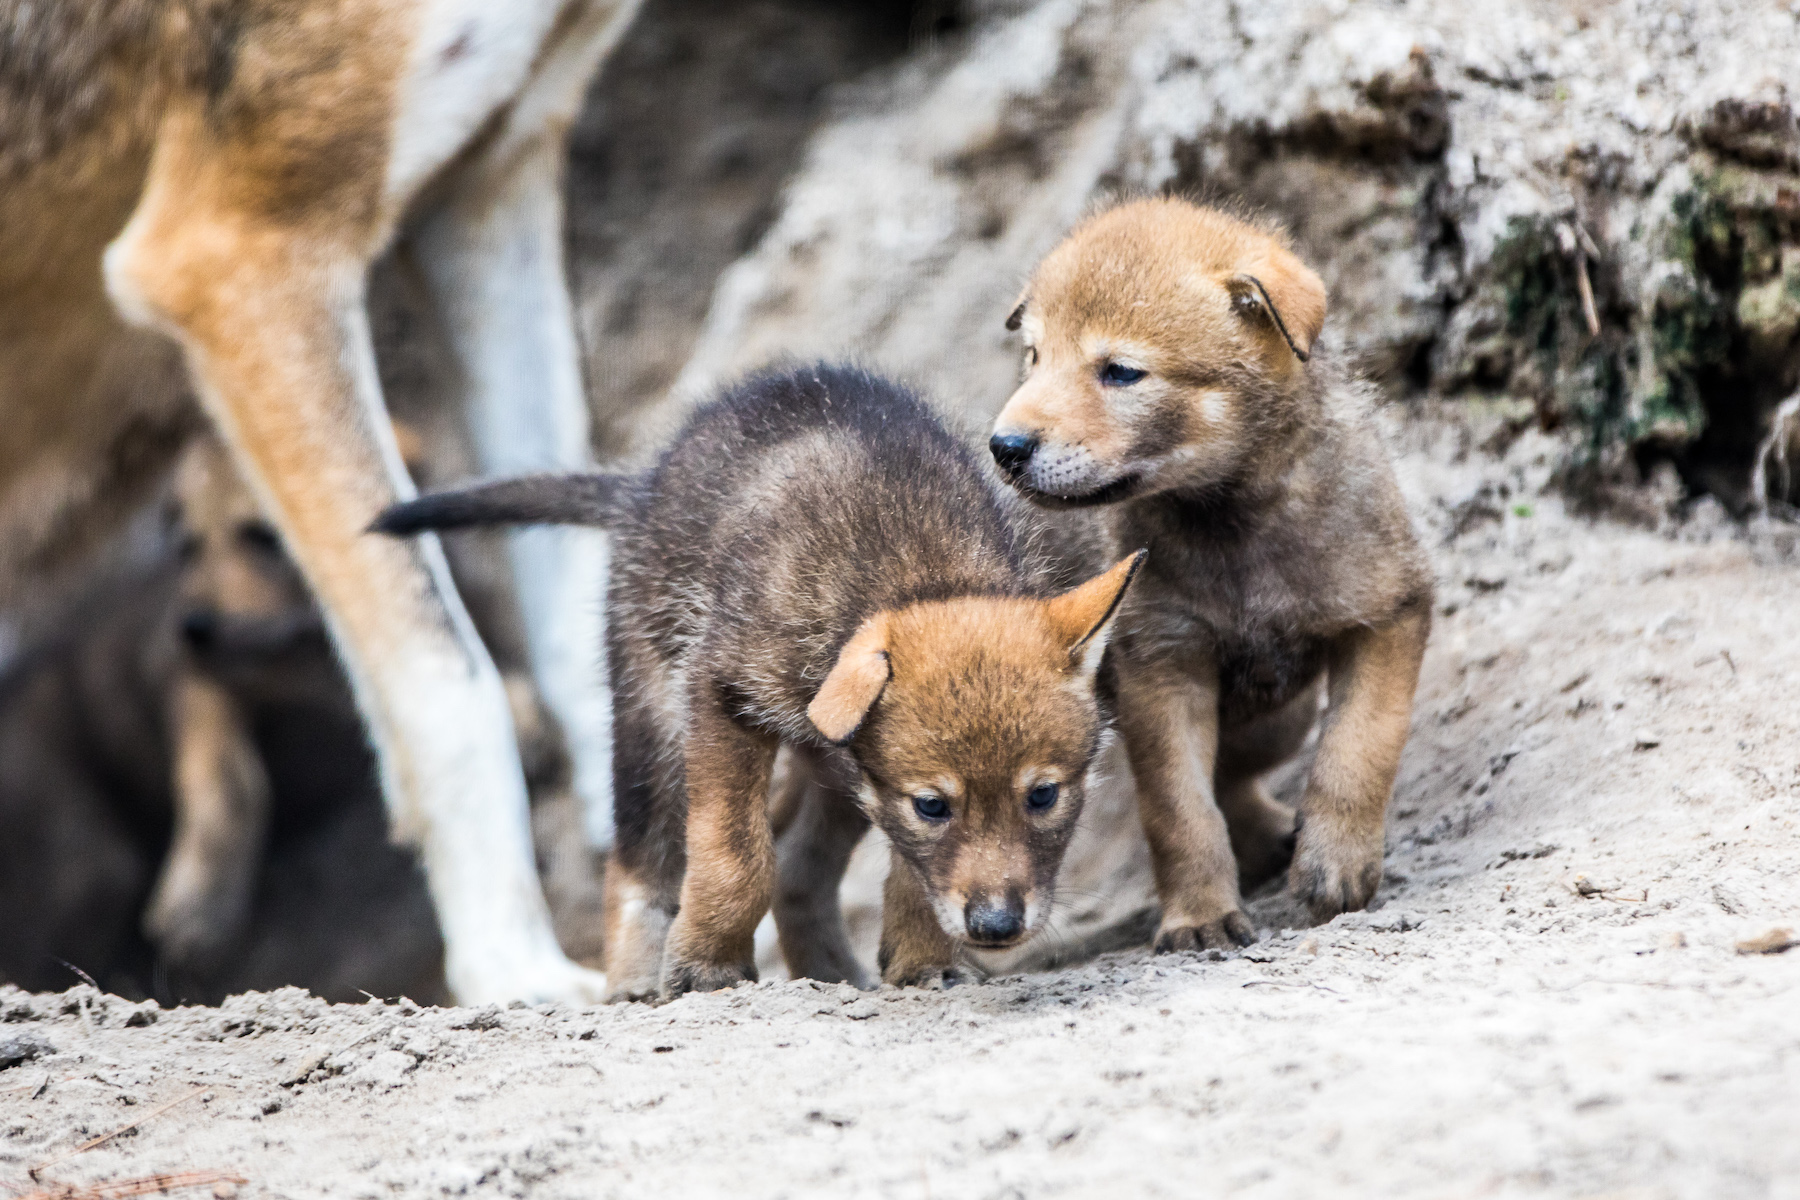 As of April 2018, the number of wild red wolves in the United States had dropped a staggering amount, from 120 to just 40. But recently, ZooTampa at Lowry Park in Tampa, Florida welcomed the addition of a litter of four red wolf pups.